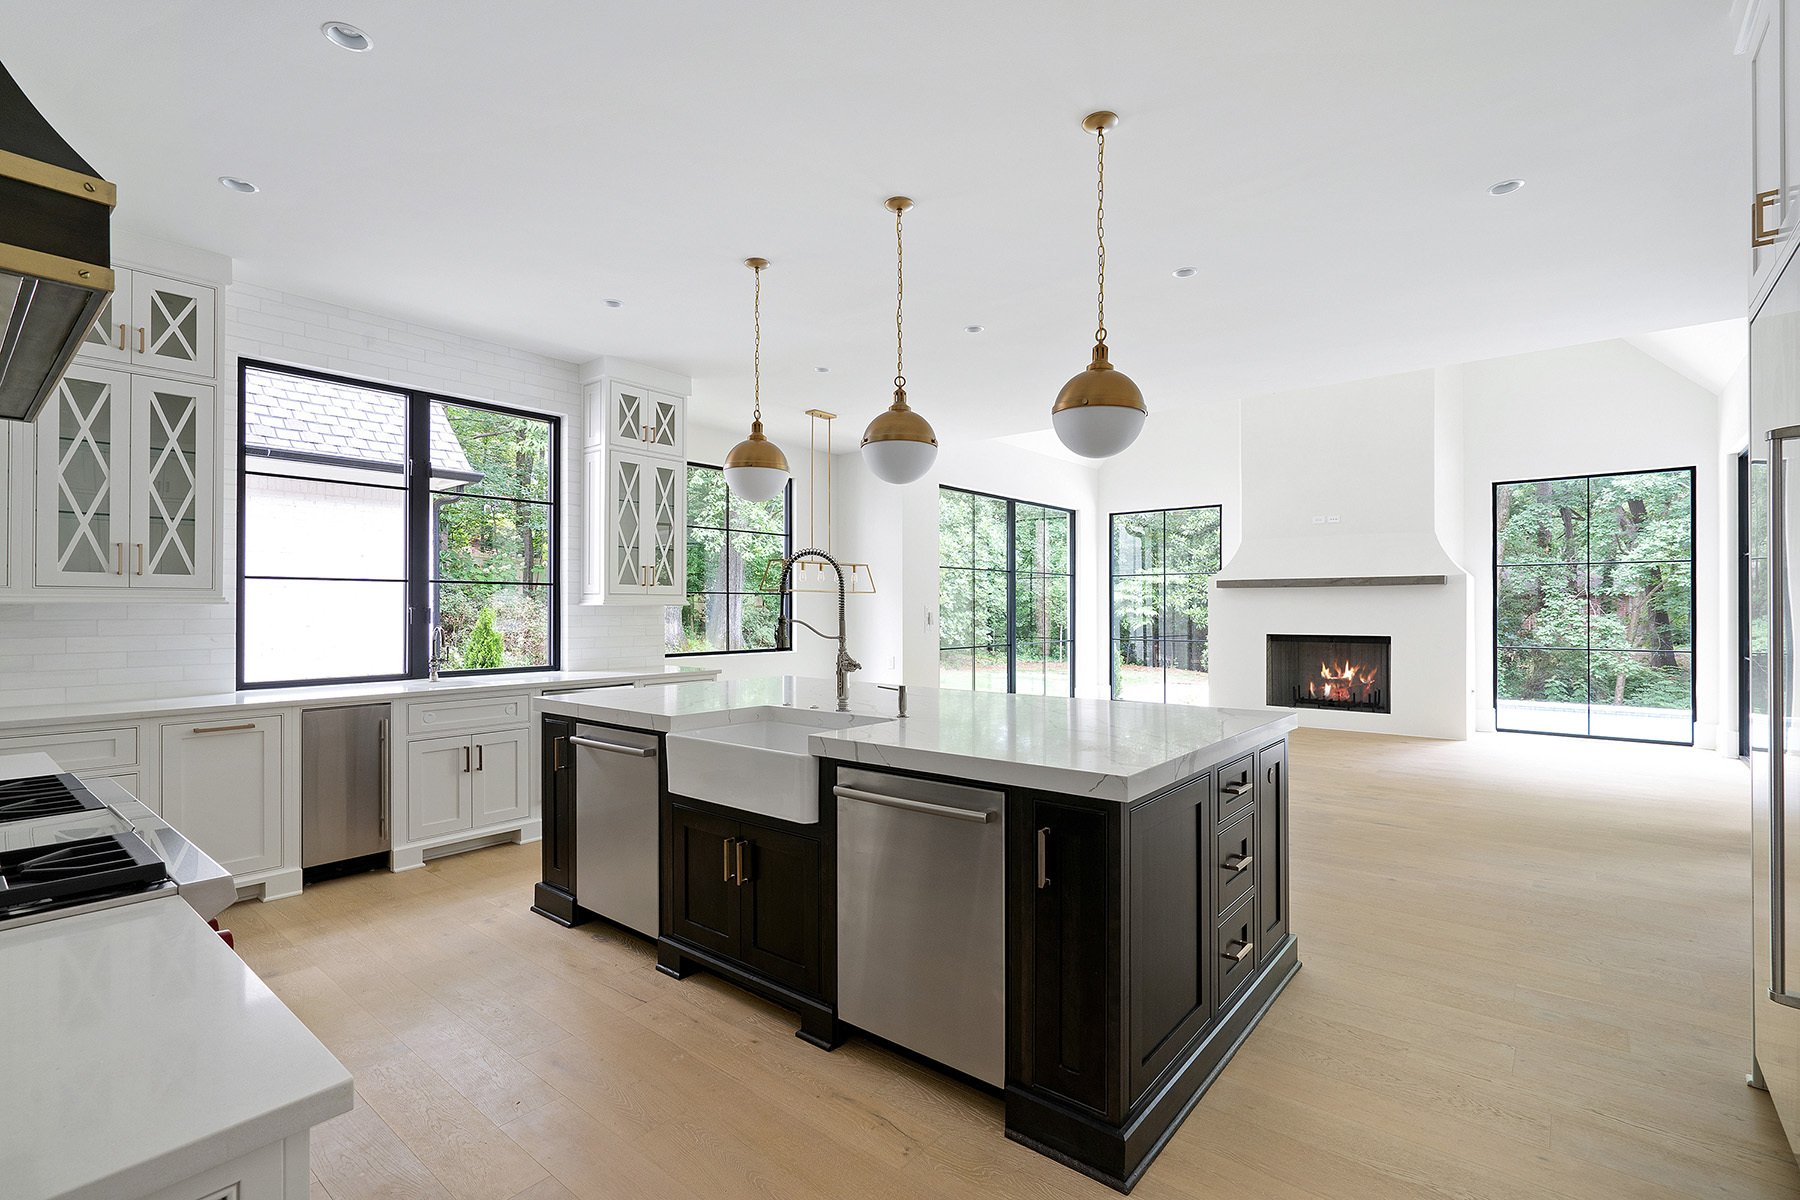 Beautiful black island with white cabinetry featuring a farmhouse sink and stainless steel appliances.